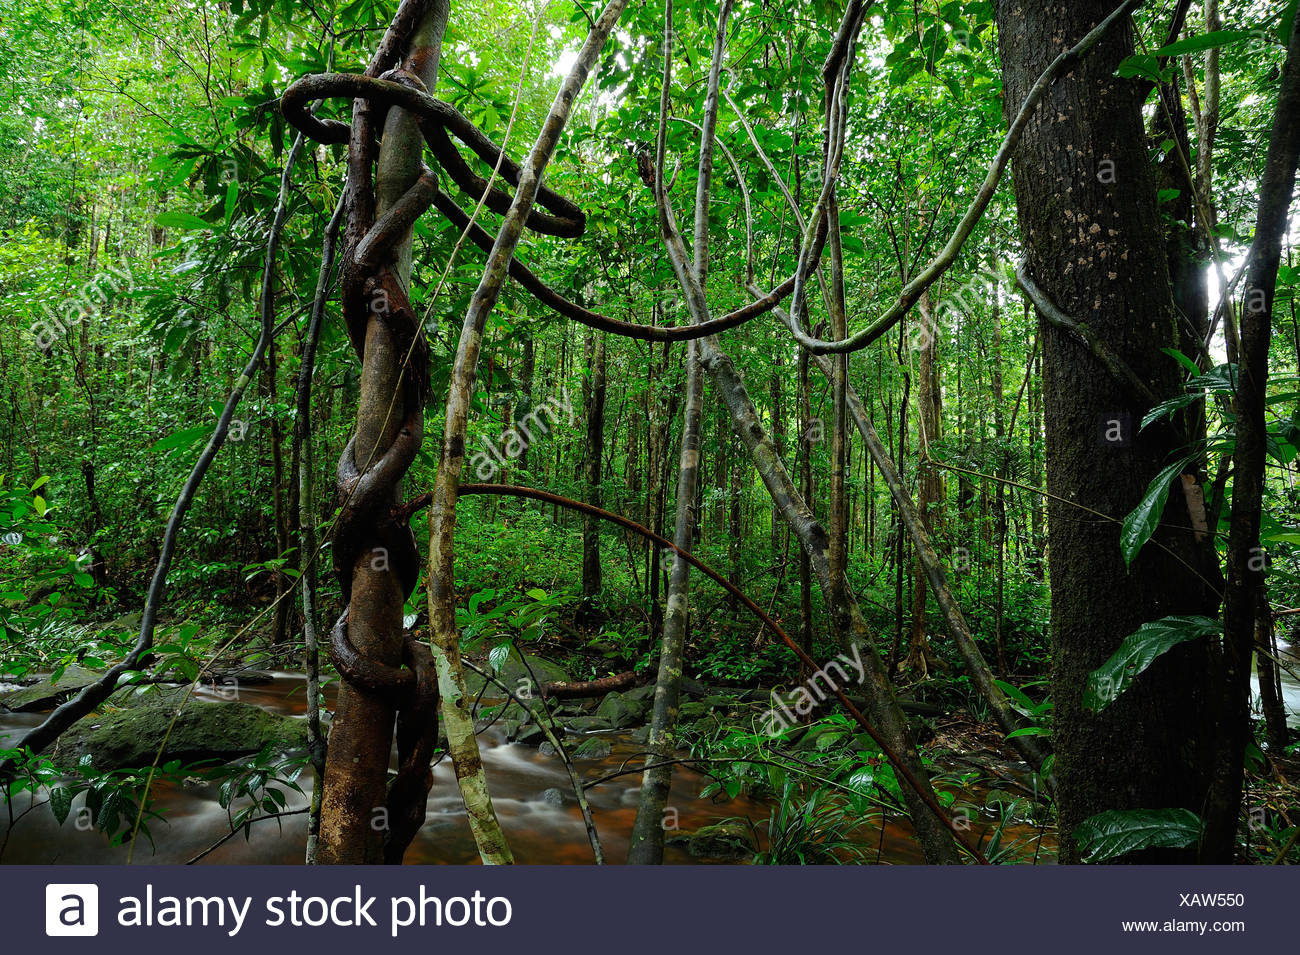 Lianas in undergrowth -Cirque des Cascades French Guiana - Stock Image